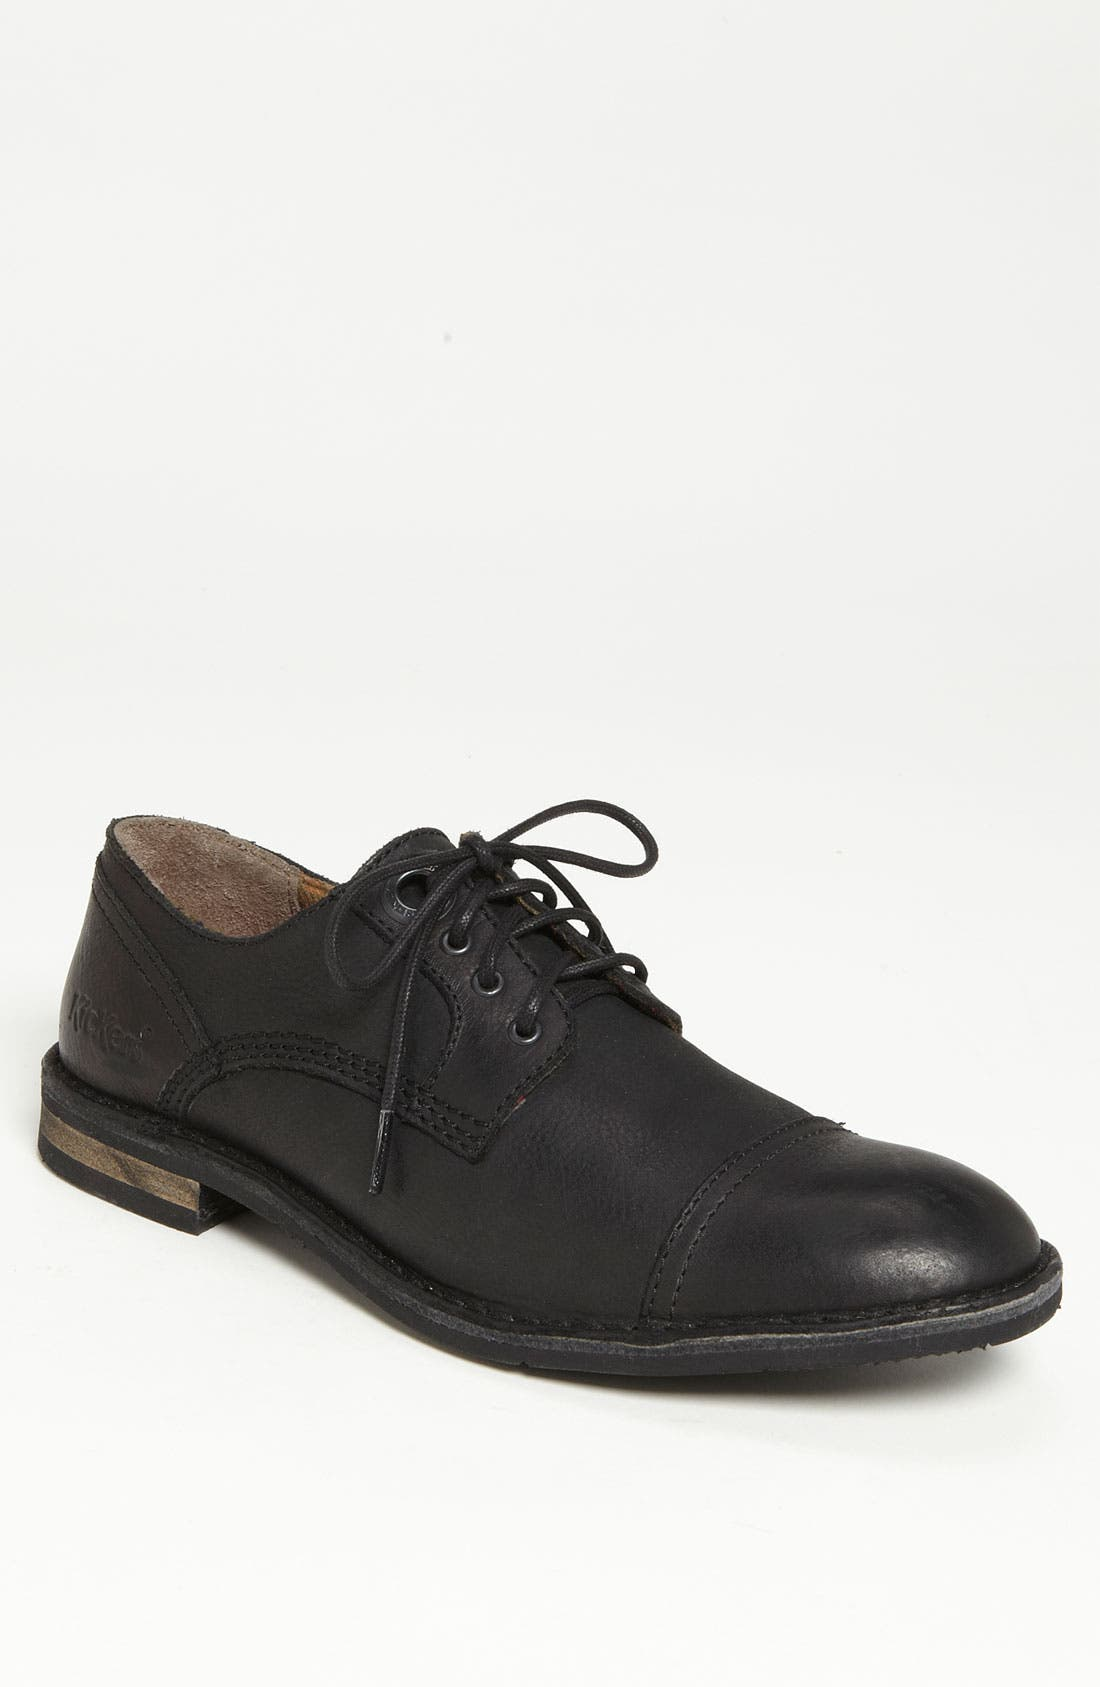 Alternate Image 1 Selected - Kickers 'Edgy' Cap Toe Derby (Online Only)